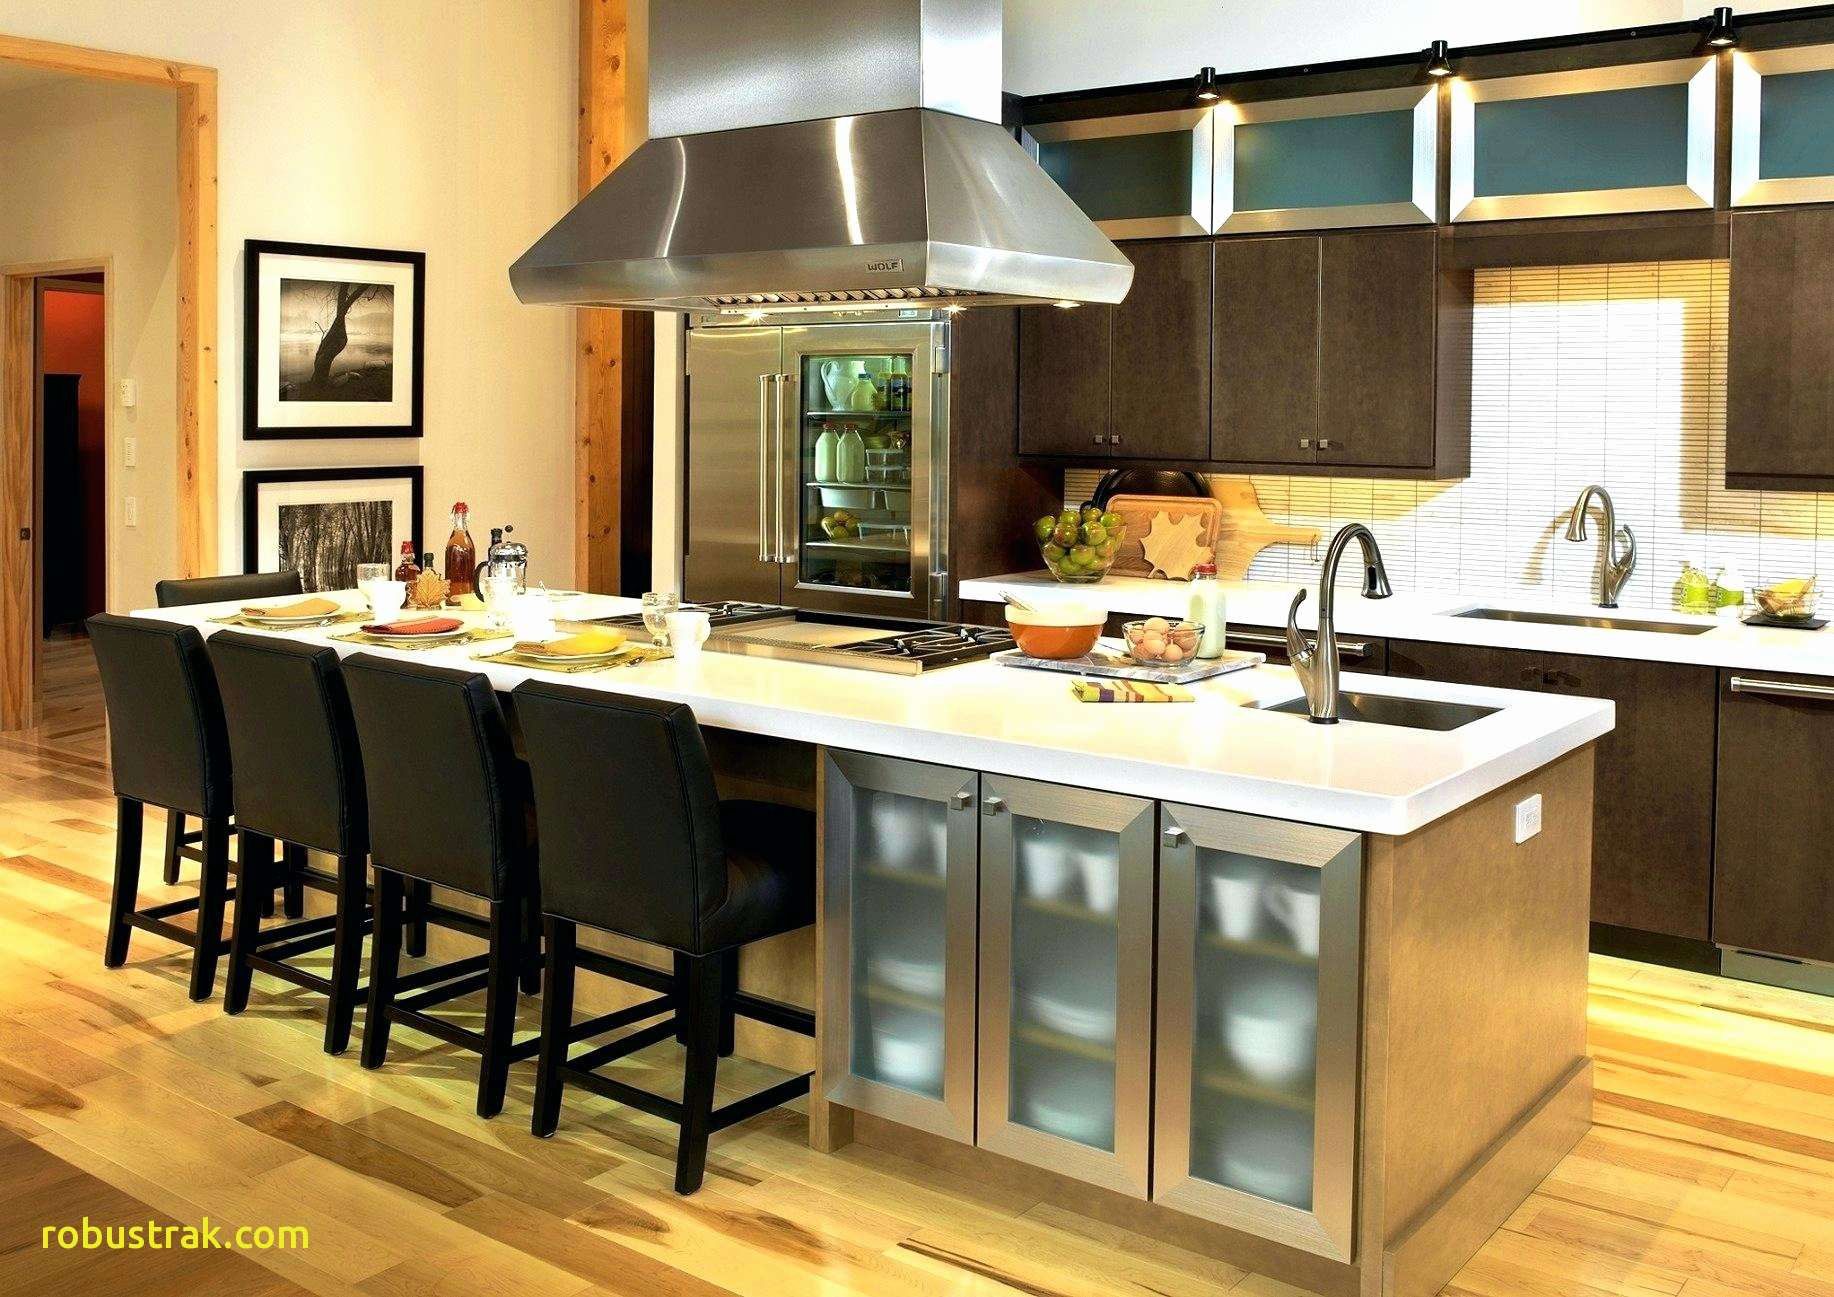 should i put hardwood floors in my kitchen of beautiful kitchen island size home design ideas inside kitchen island designs new slbss8h sink dishwasher bo 1958i 0d the best kitchenaid and